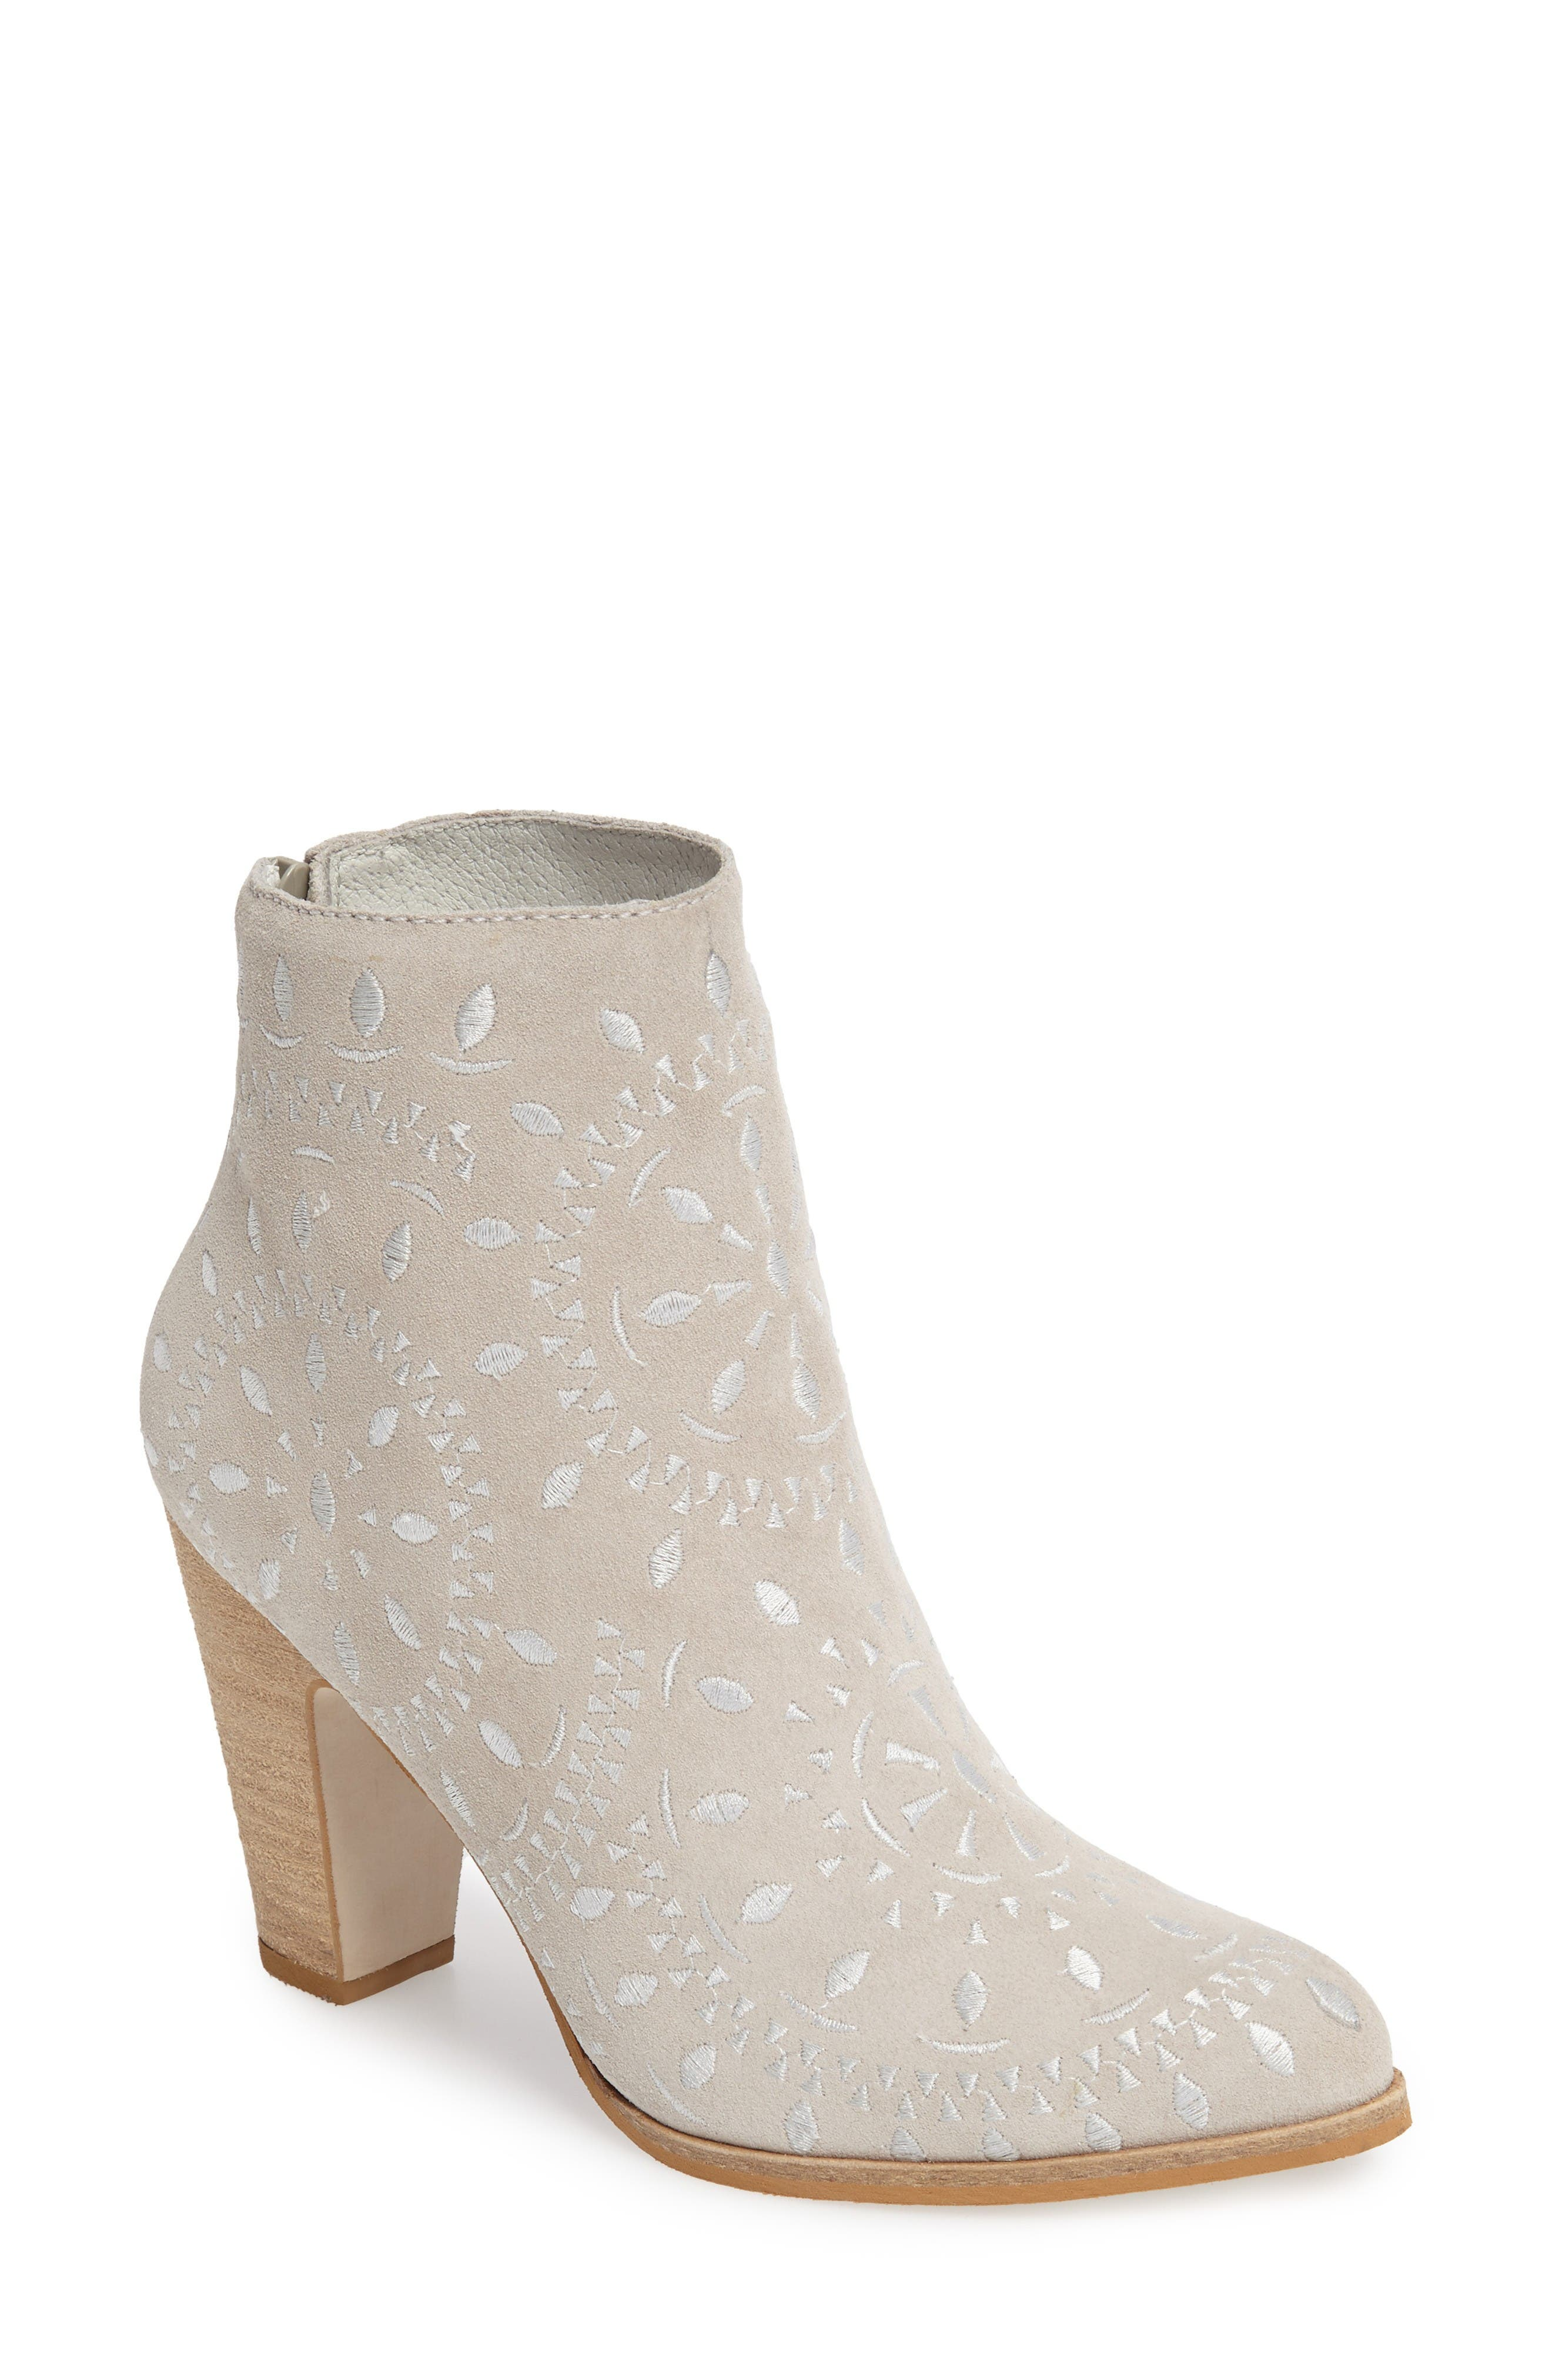 Springfield Bootie,                             Main thumbnail 1, color,                             Ivory Suede